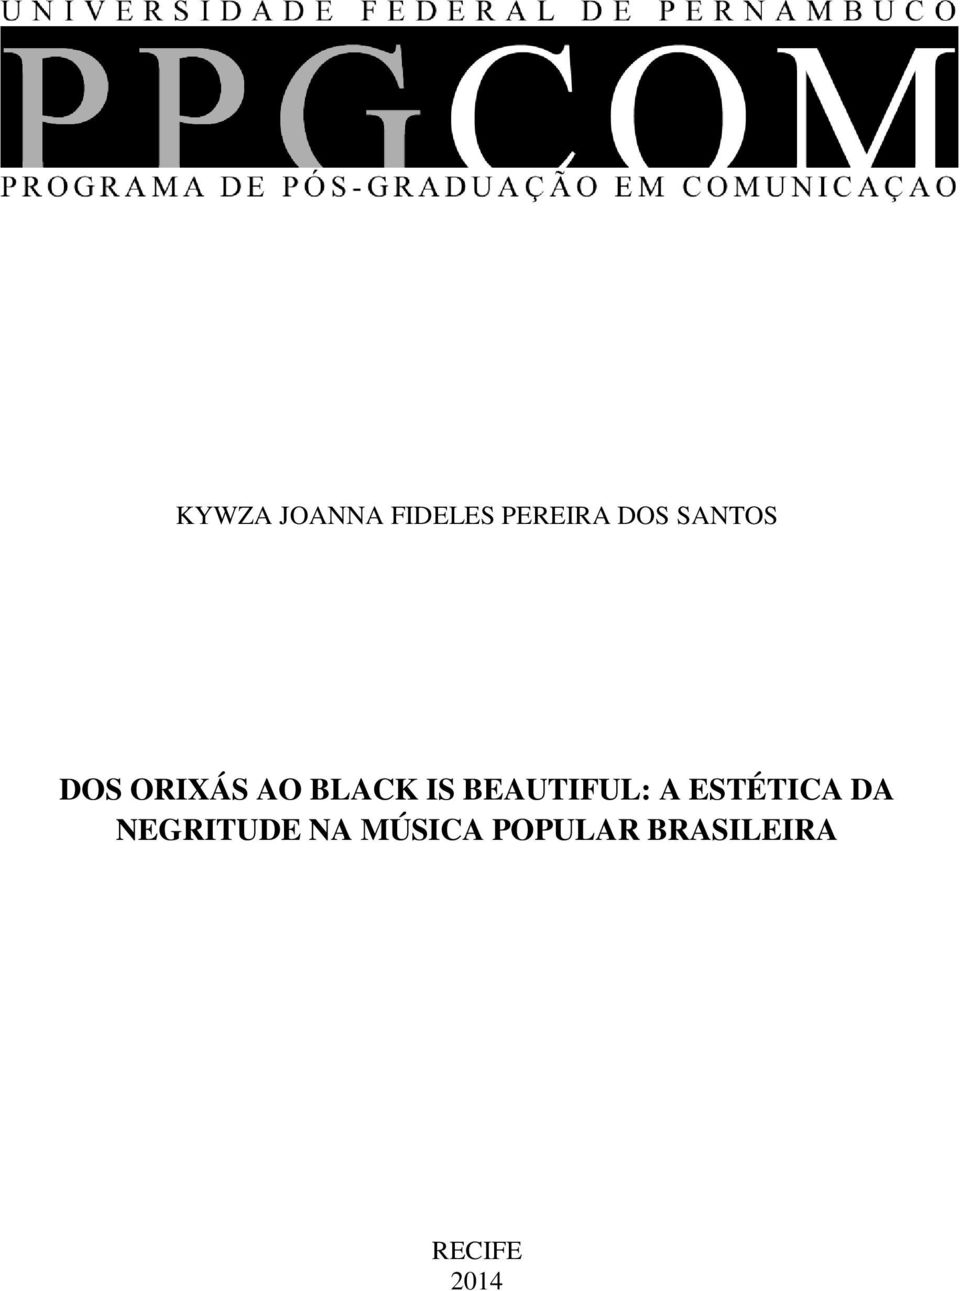 BEAUTIFUL: A ESTÉTICA DA NEGRITUDE